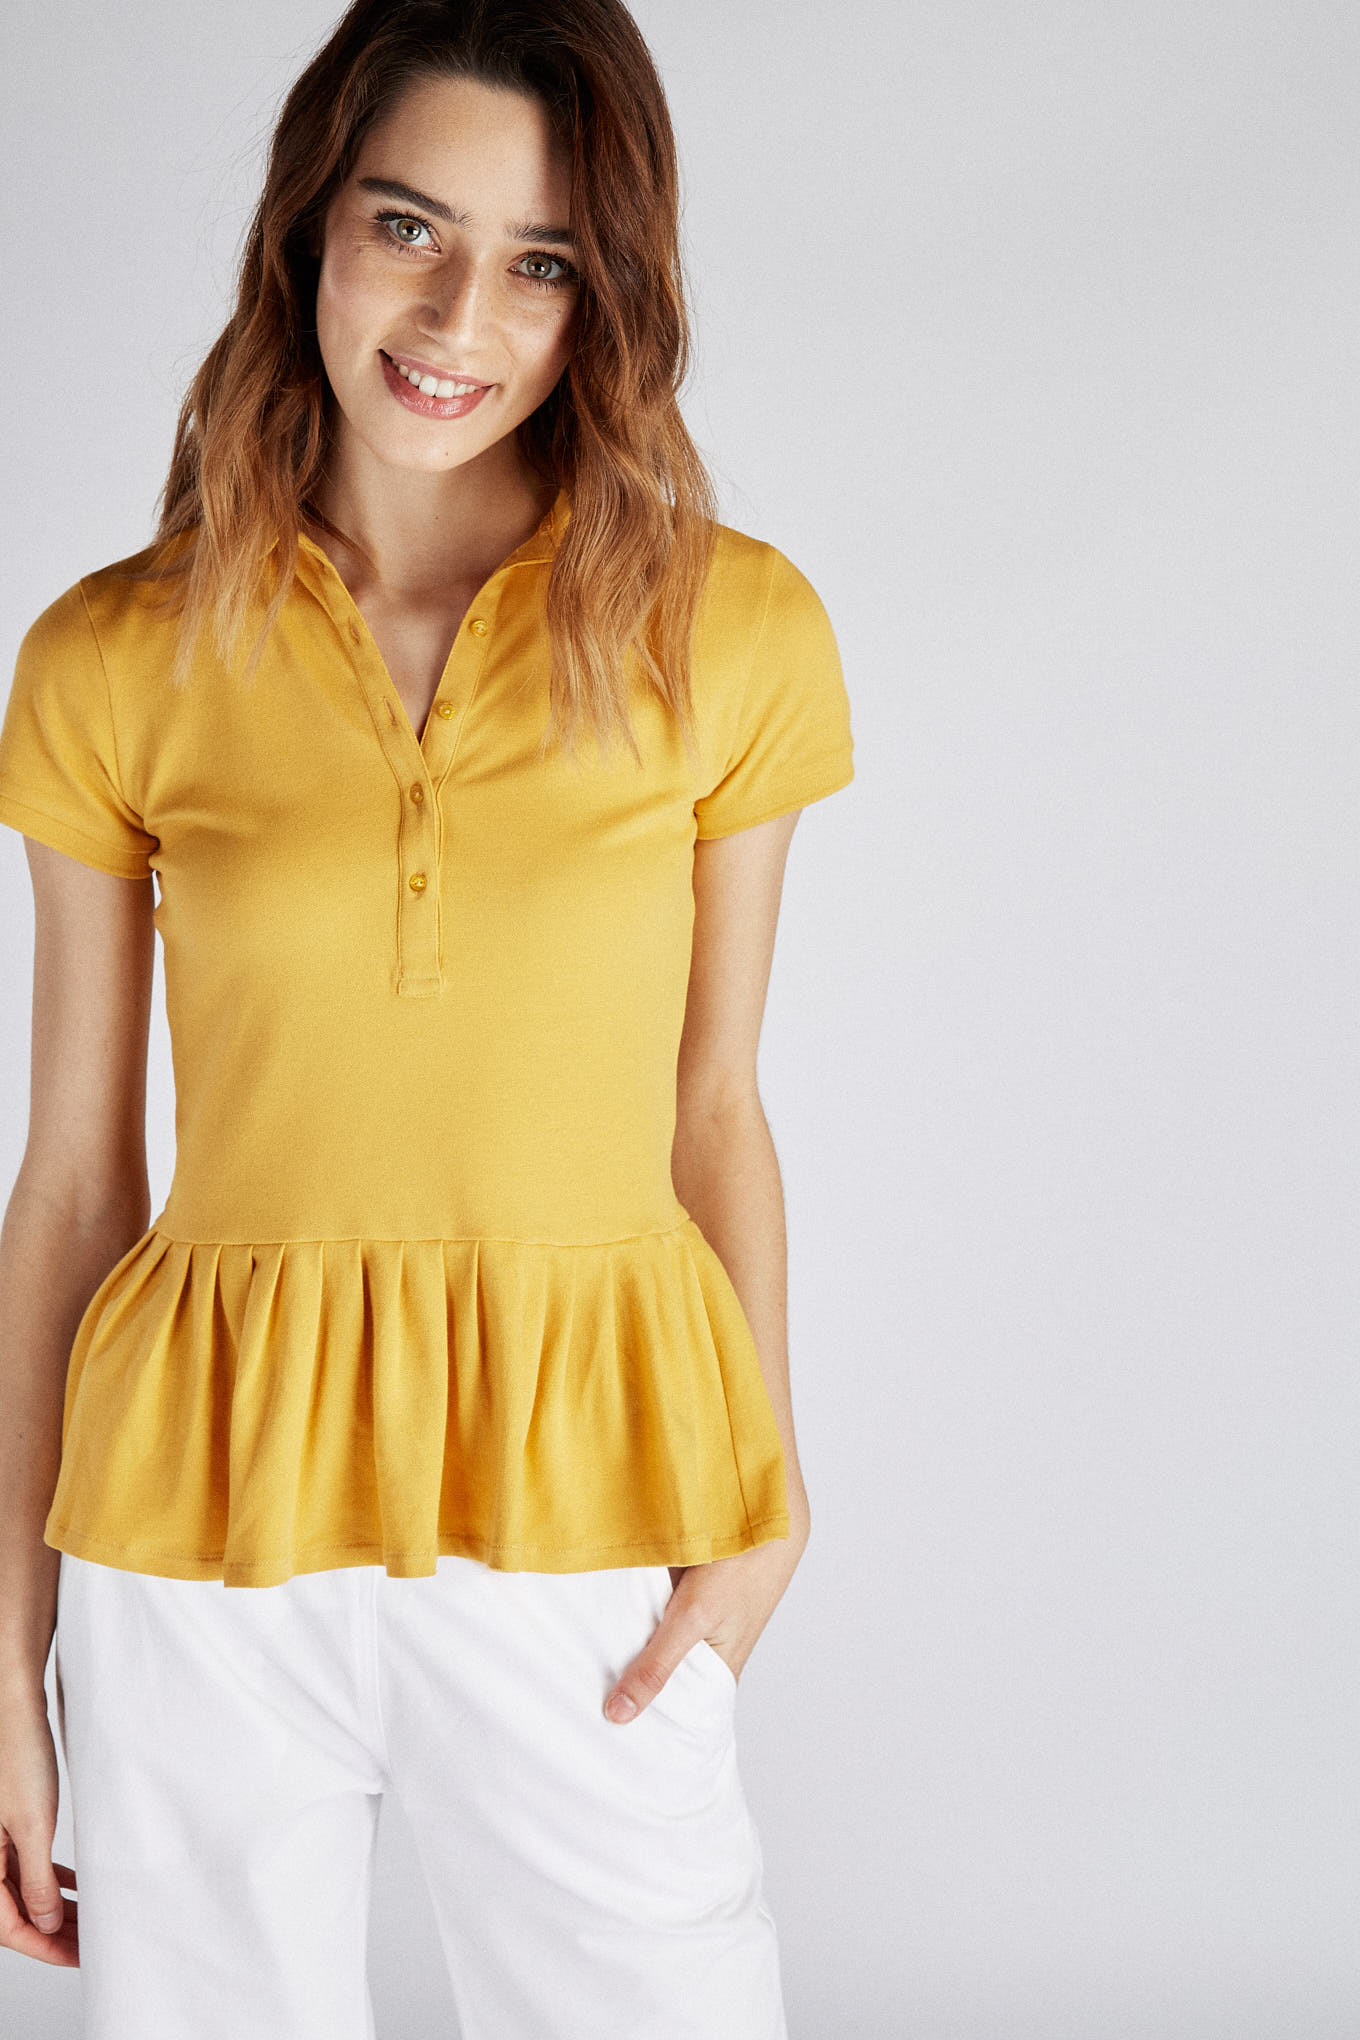 Polo Piquet Yellow Sport Woman